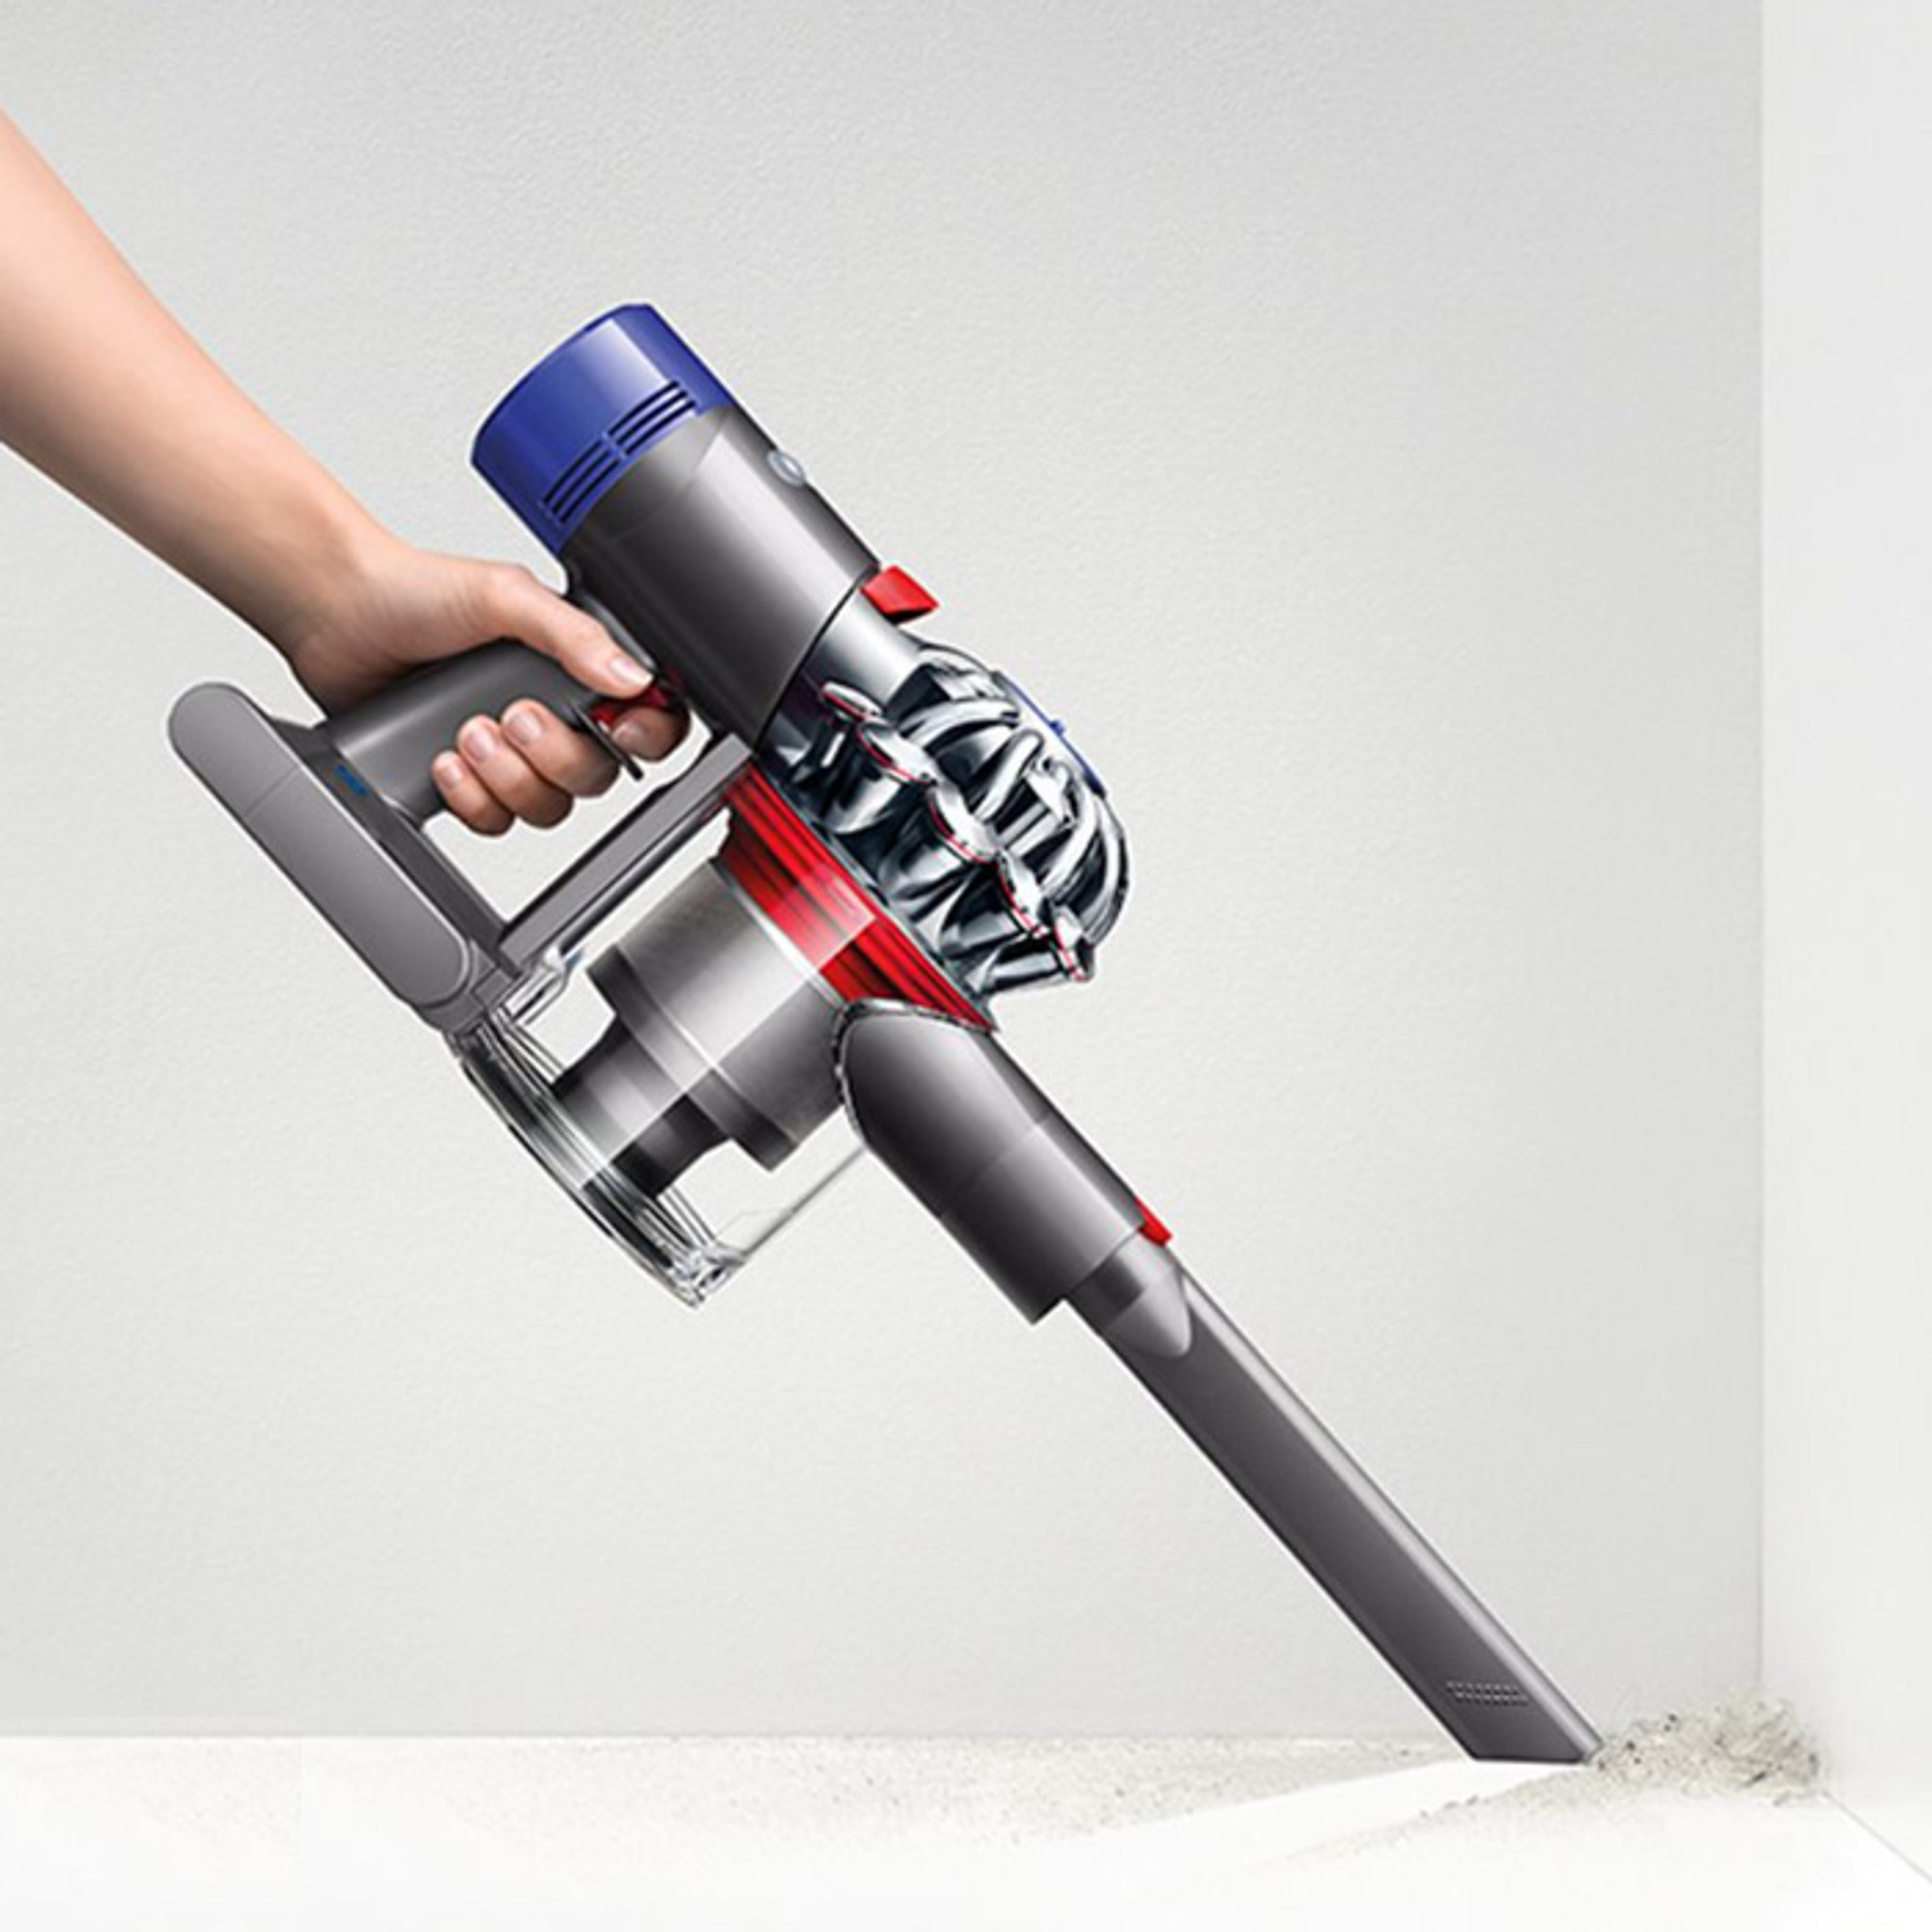 Buy Dyson V7 Complete Cordless Vacuum From Canada At